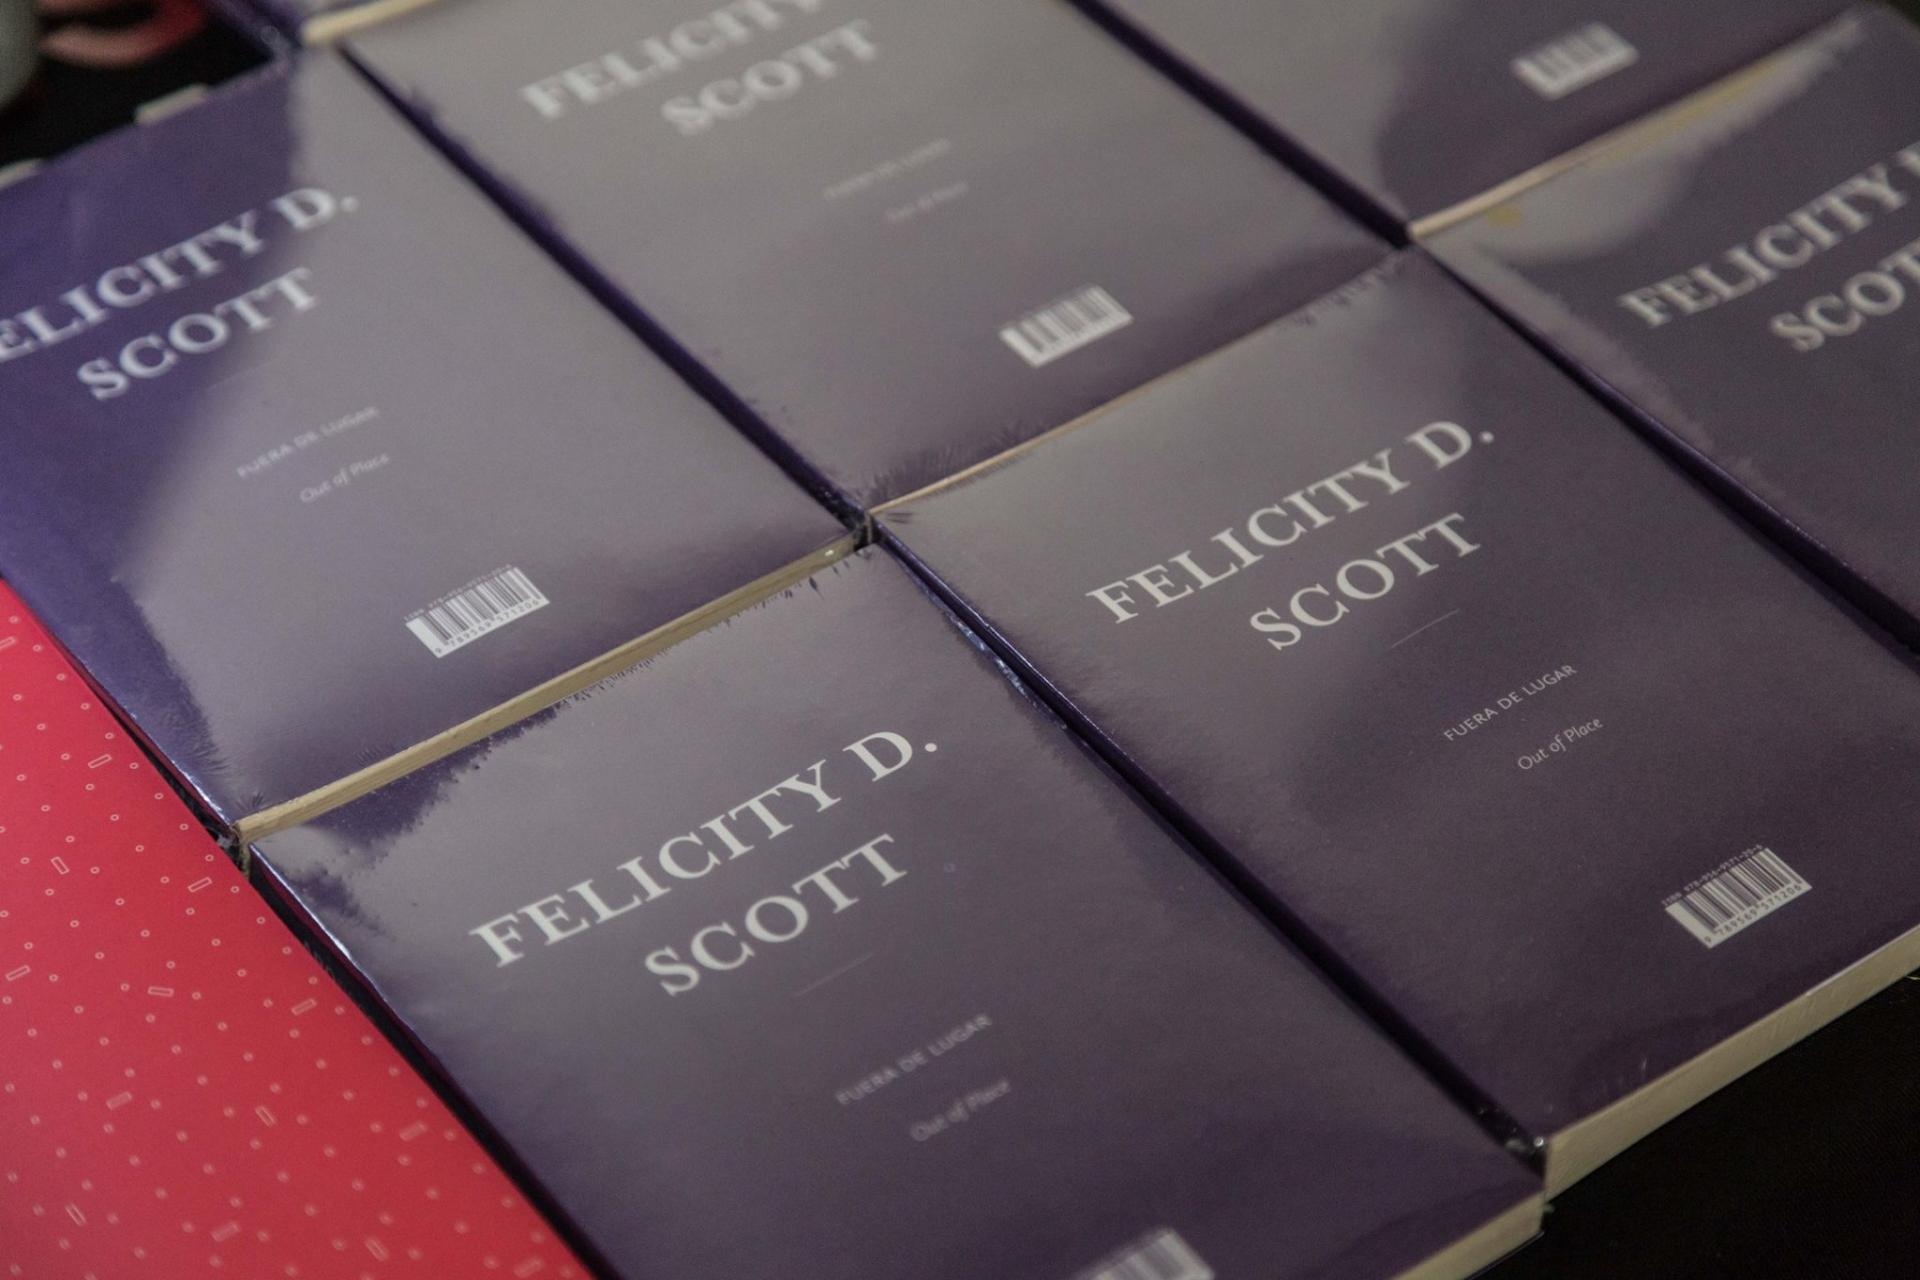 Felicity D. Scott Book Launch and Lecture in Chile